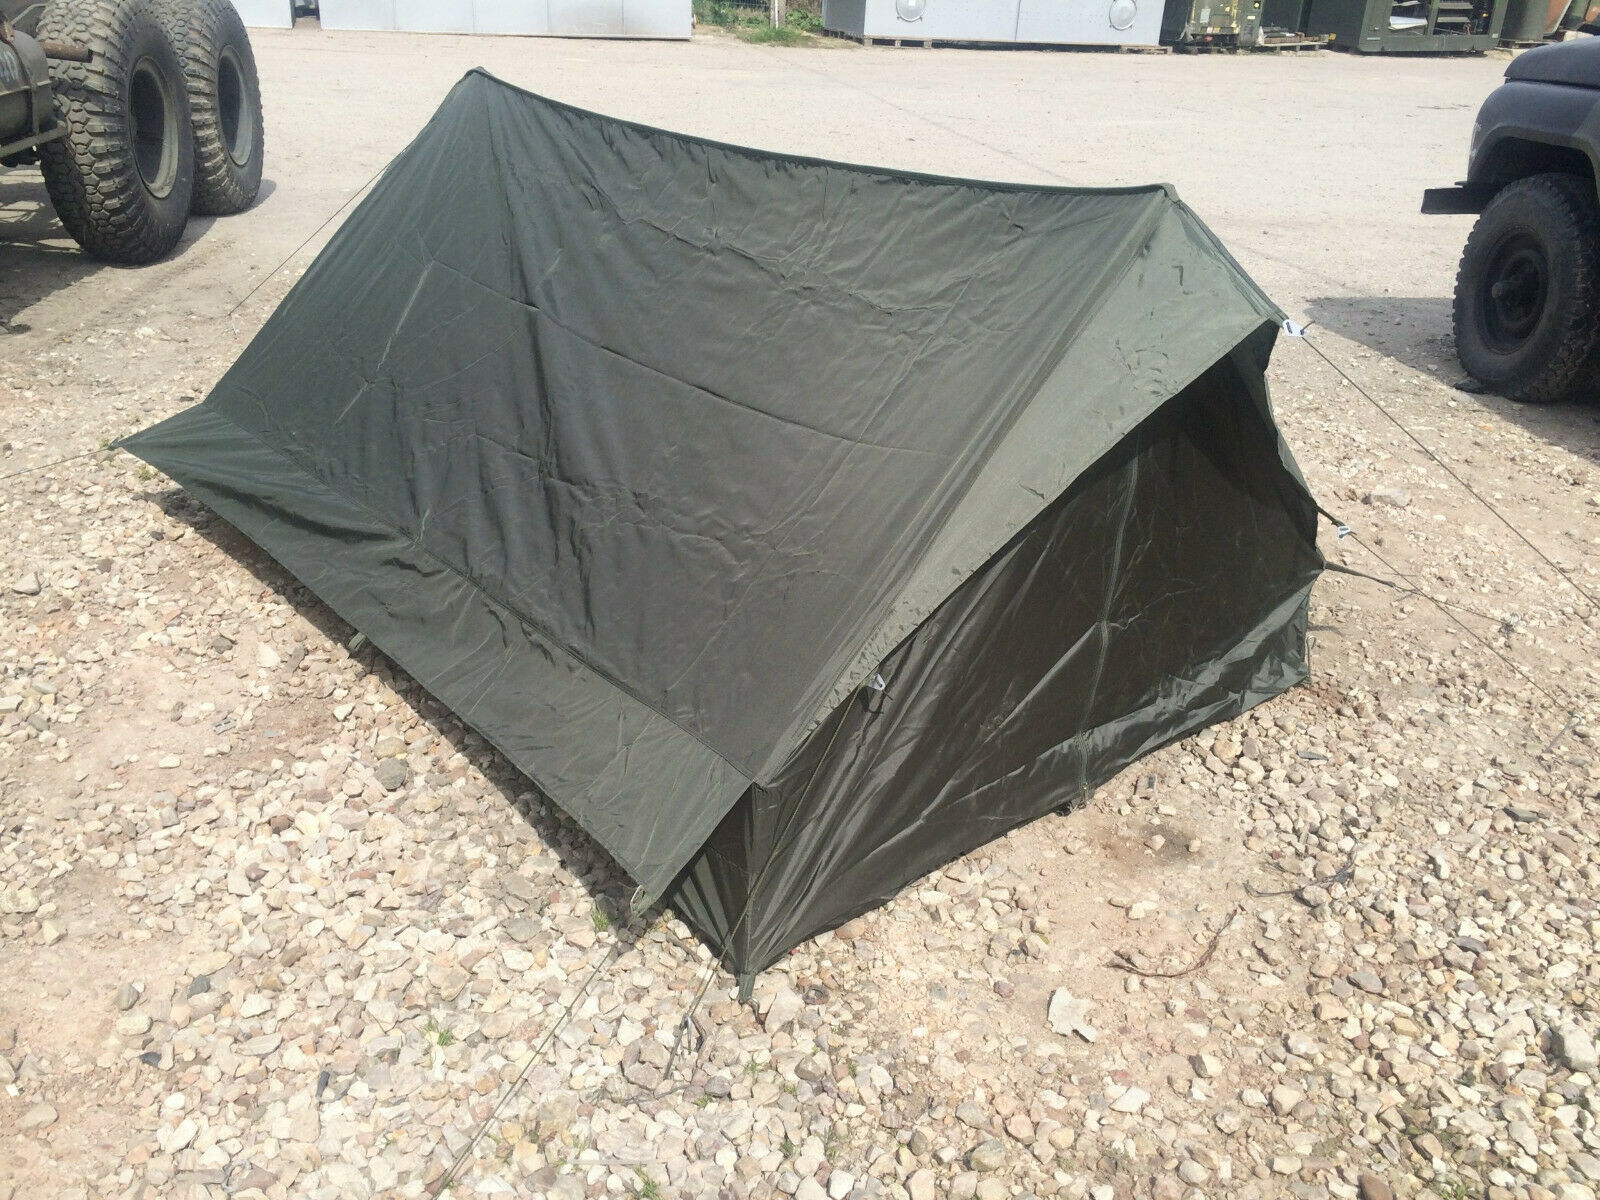 French tent double a new camping tent,outside  military tent 1.5 x 2 m